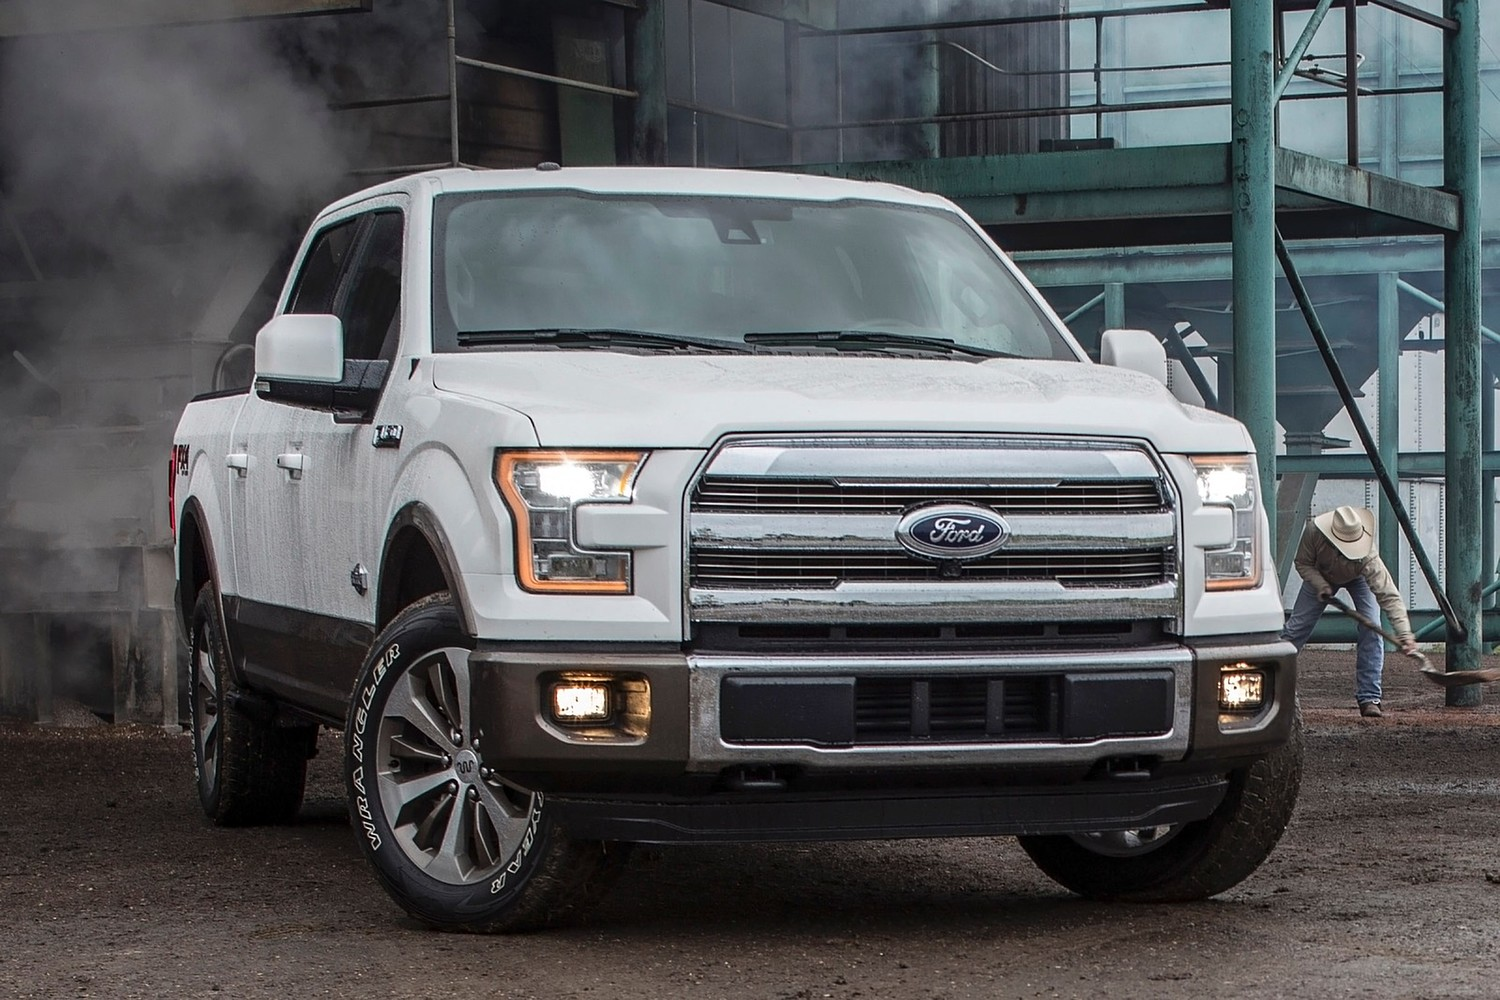 2015 Ford F-150 King Ranch Crew Cab Pickup Exterior